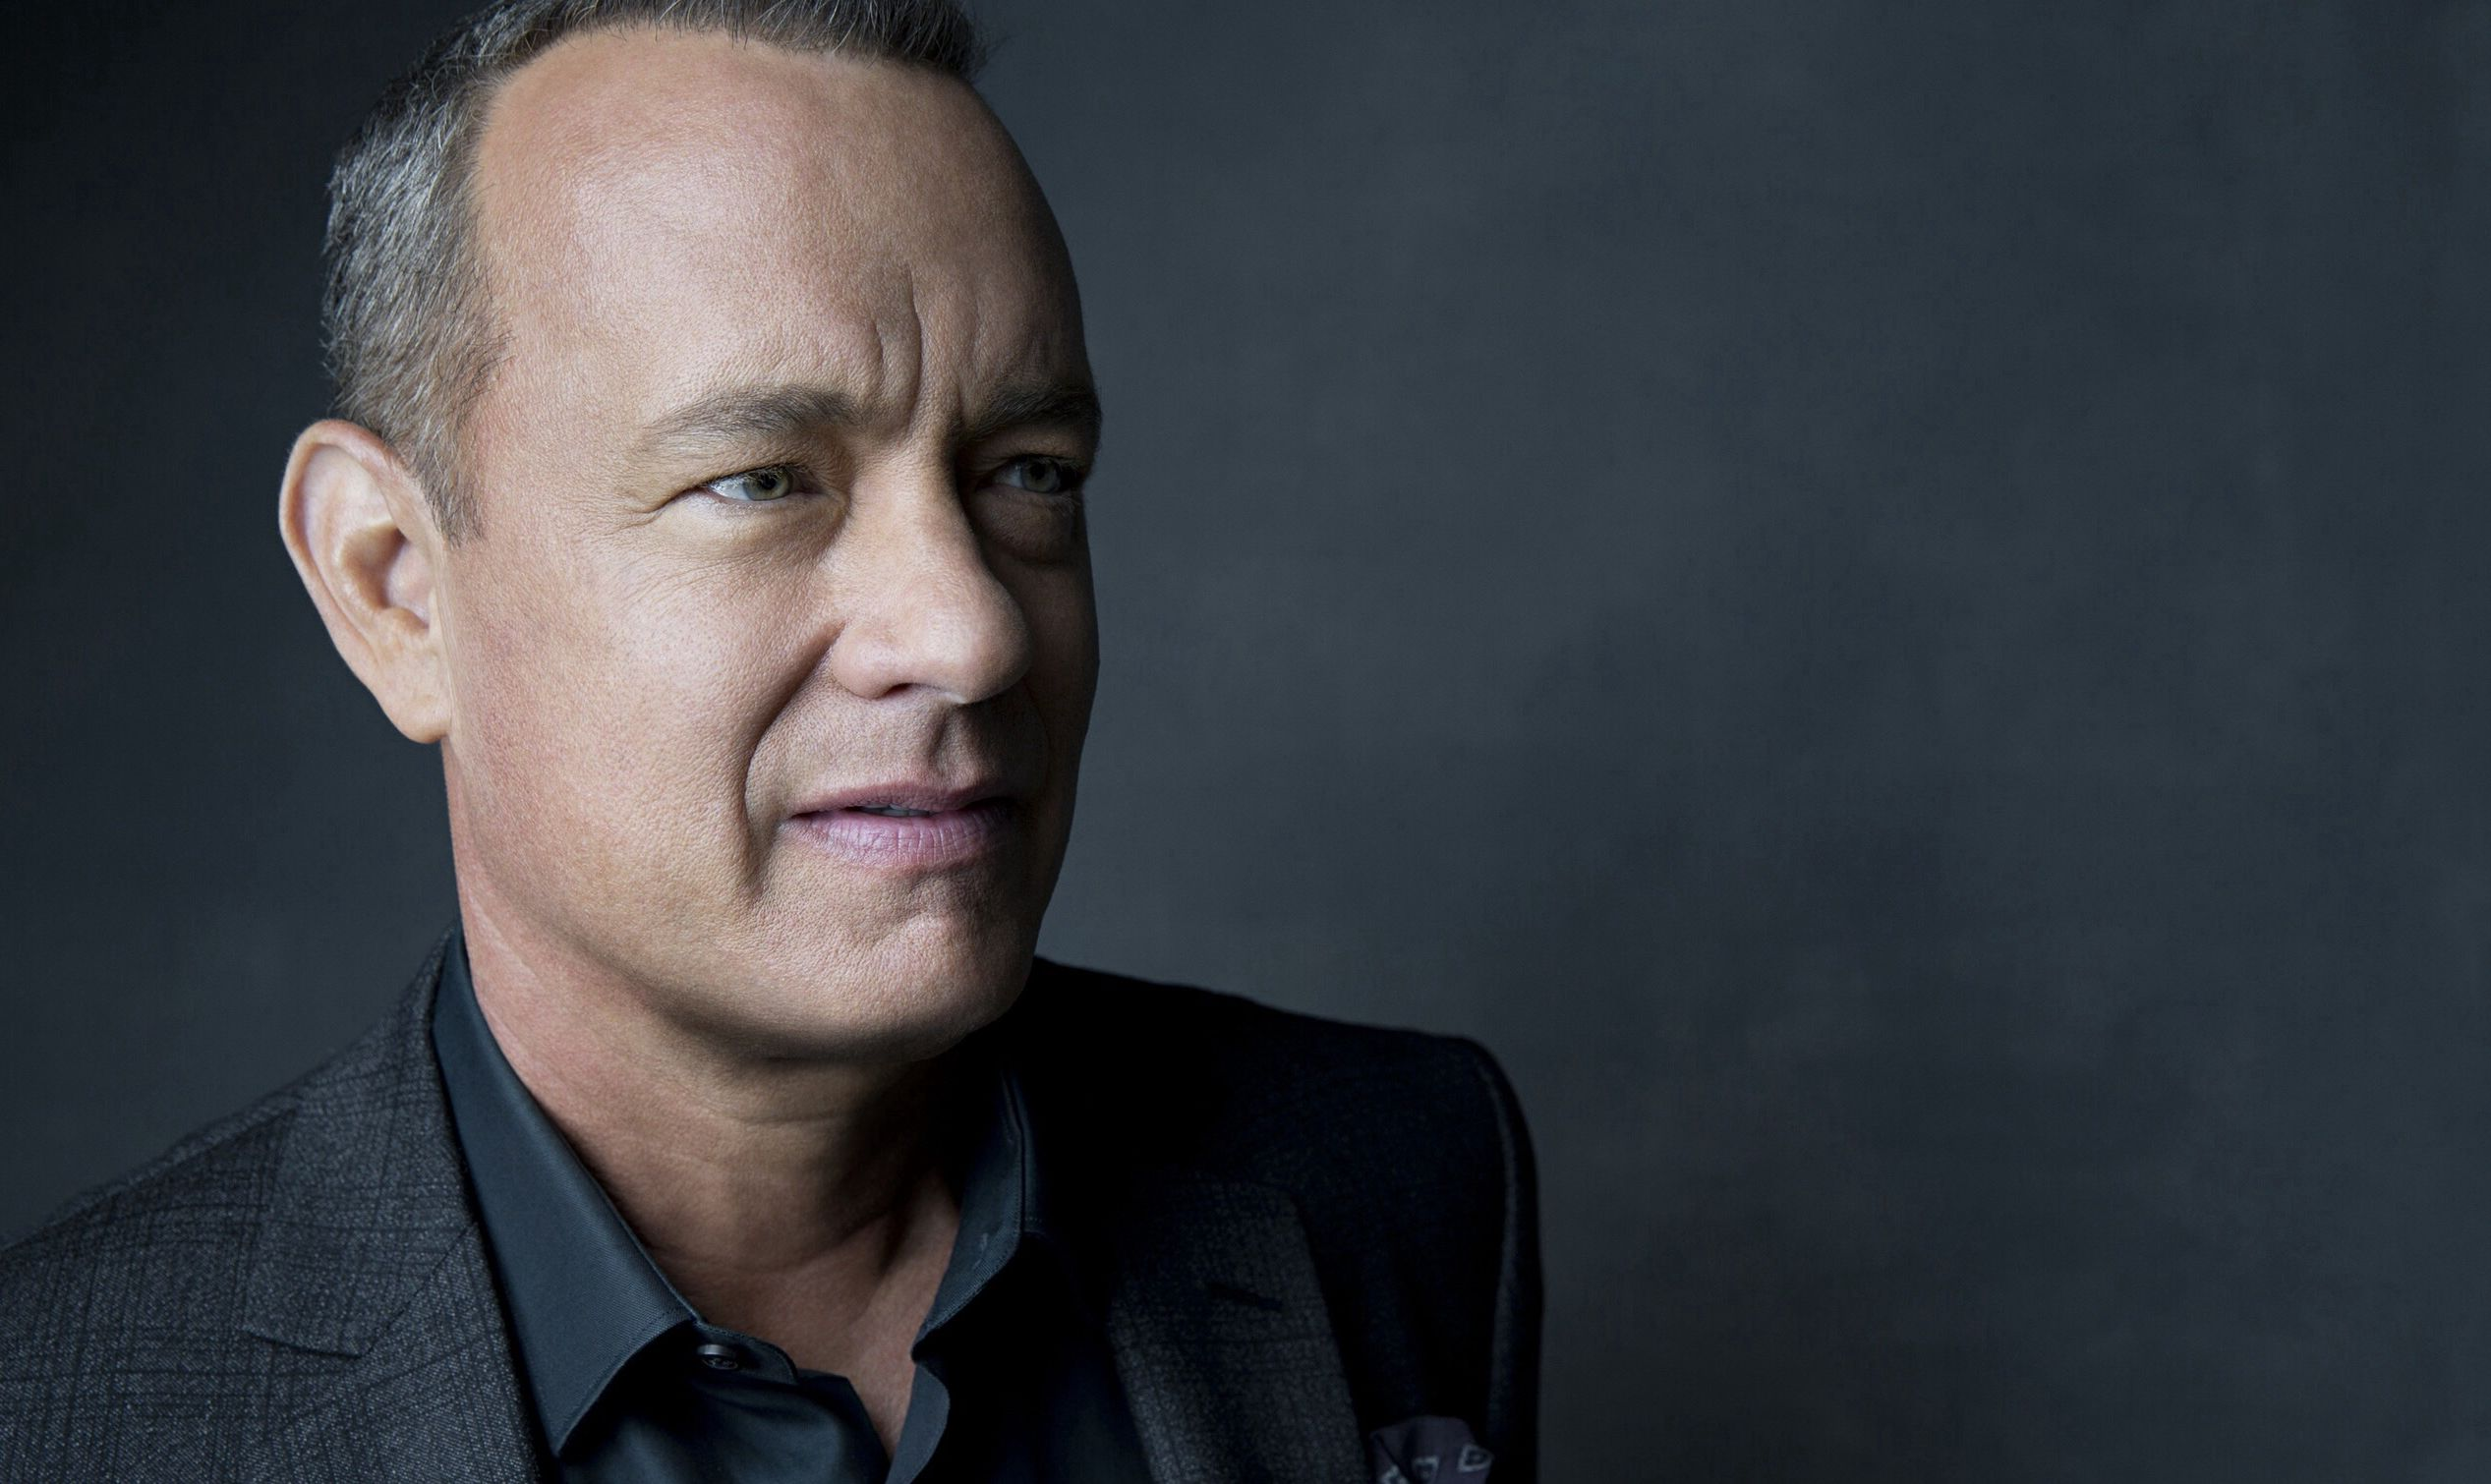 Tom Hanks in Talks to Play Heroic Pilot in Clint Eastwood Fi